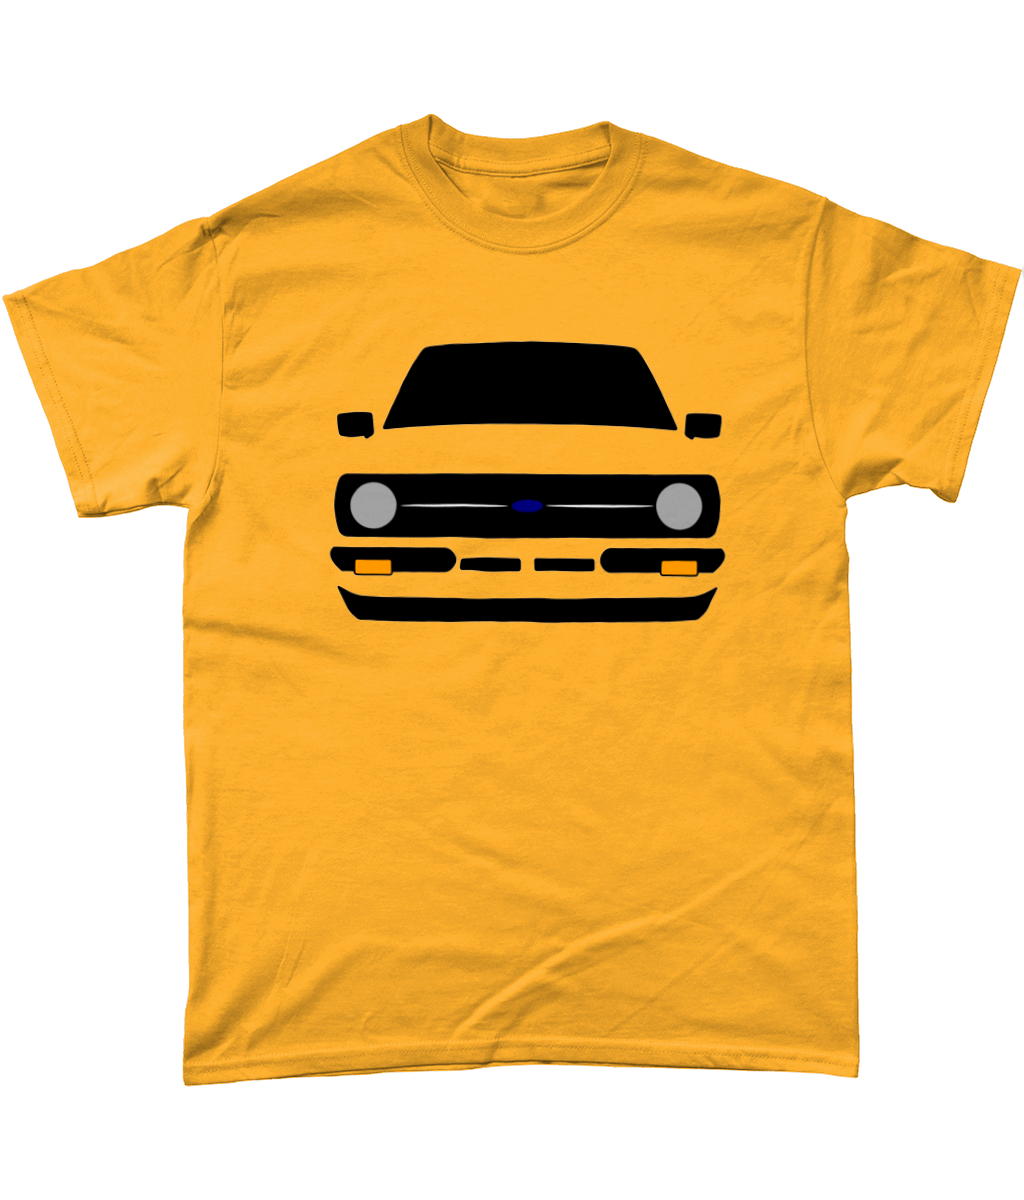 Ford Escort MK2 RS1800 T-Shirt 🎨